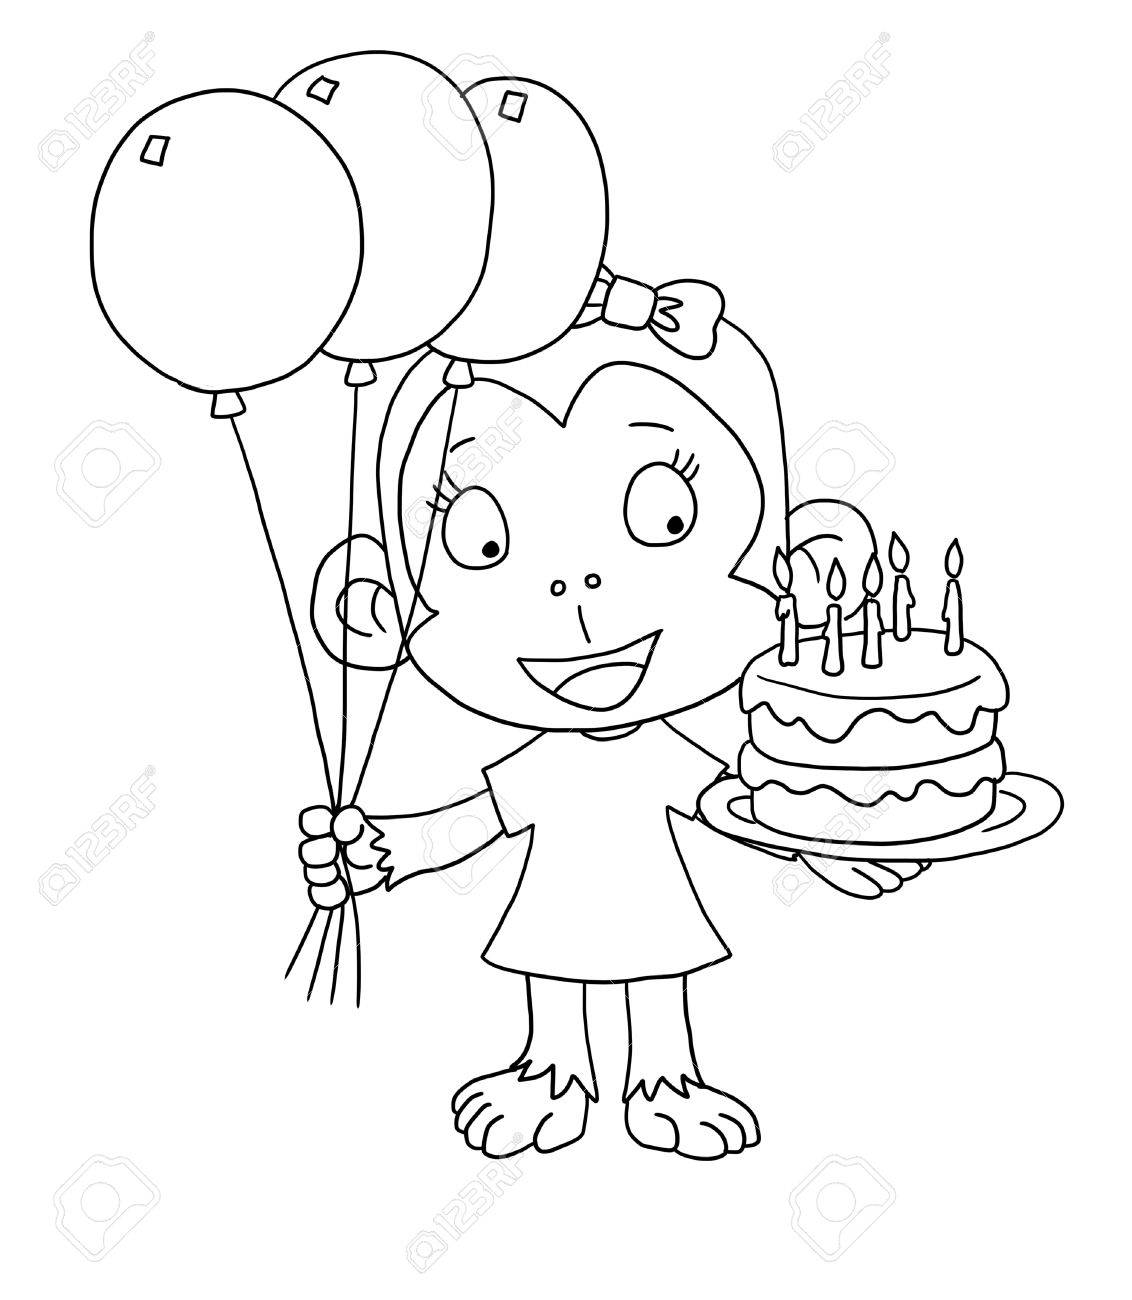 Happy Birthday Monkey - Coloring Page Stock Photo, Picture And ...